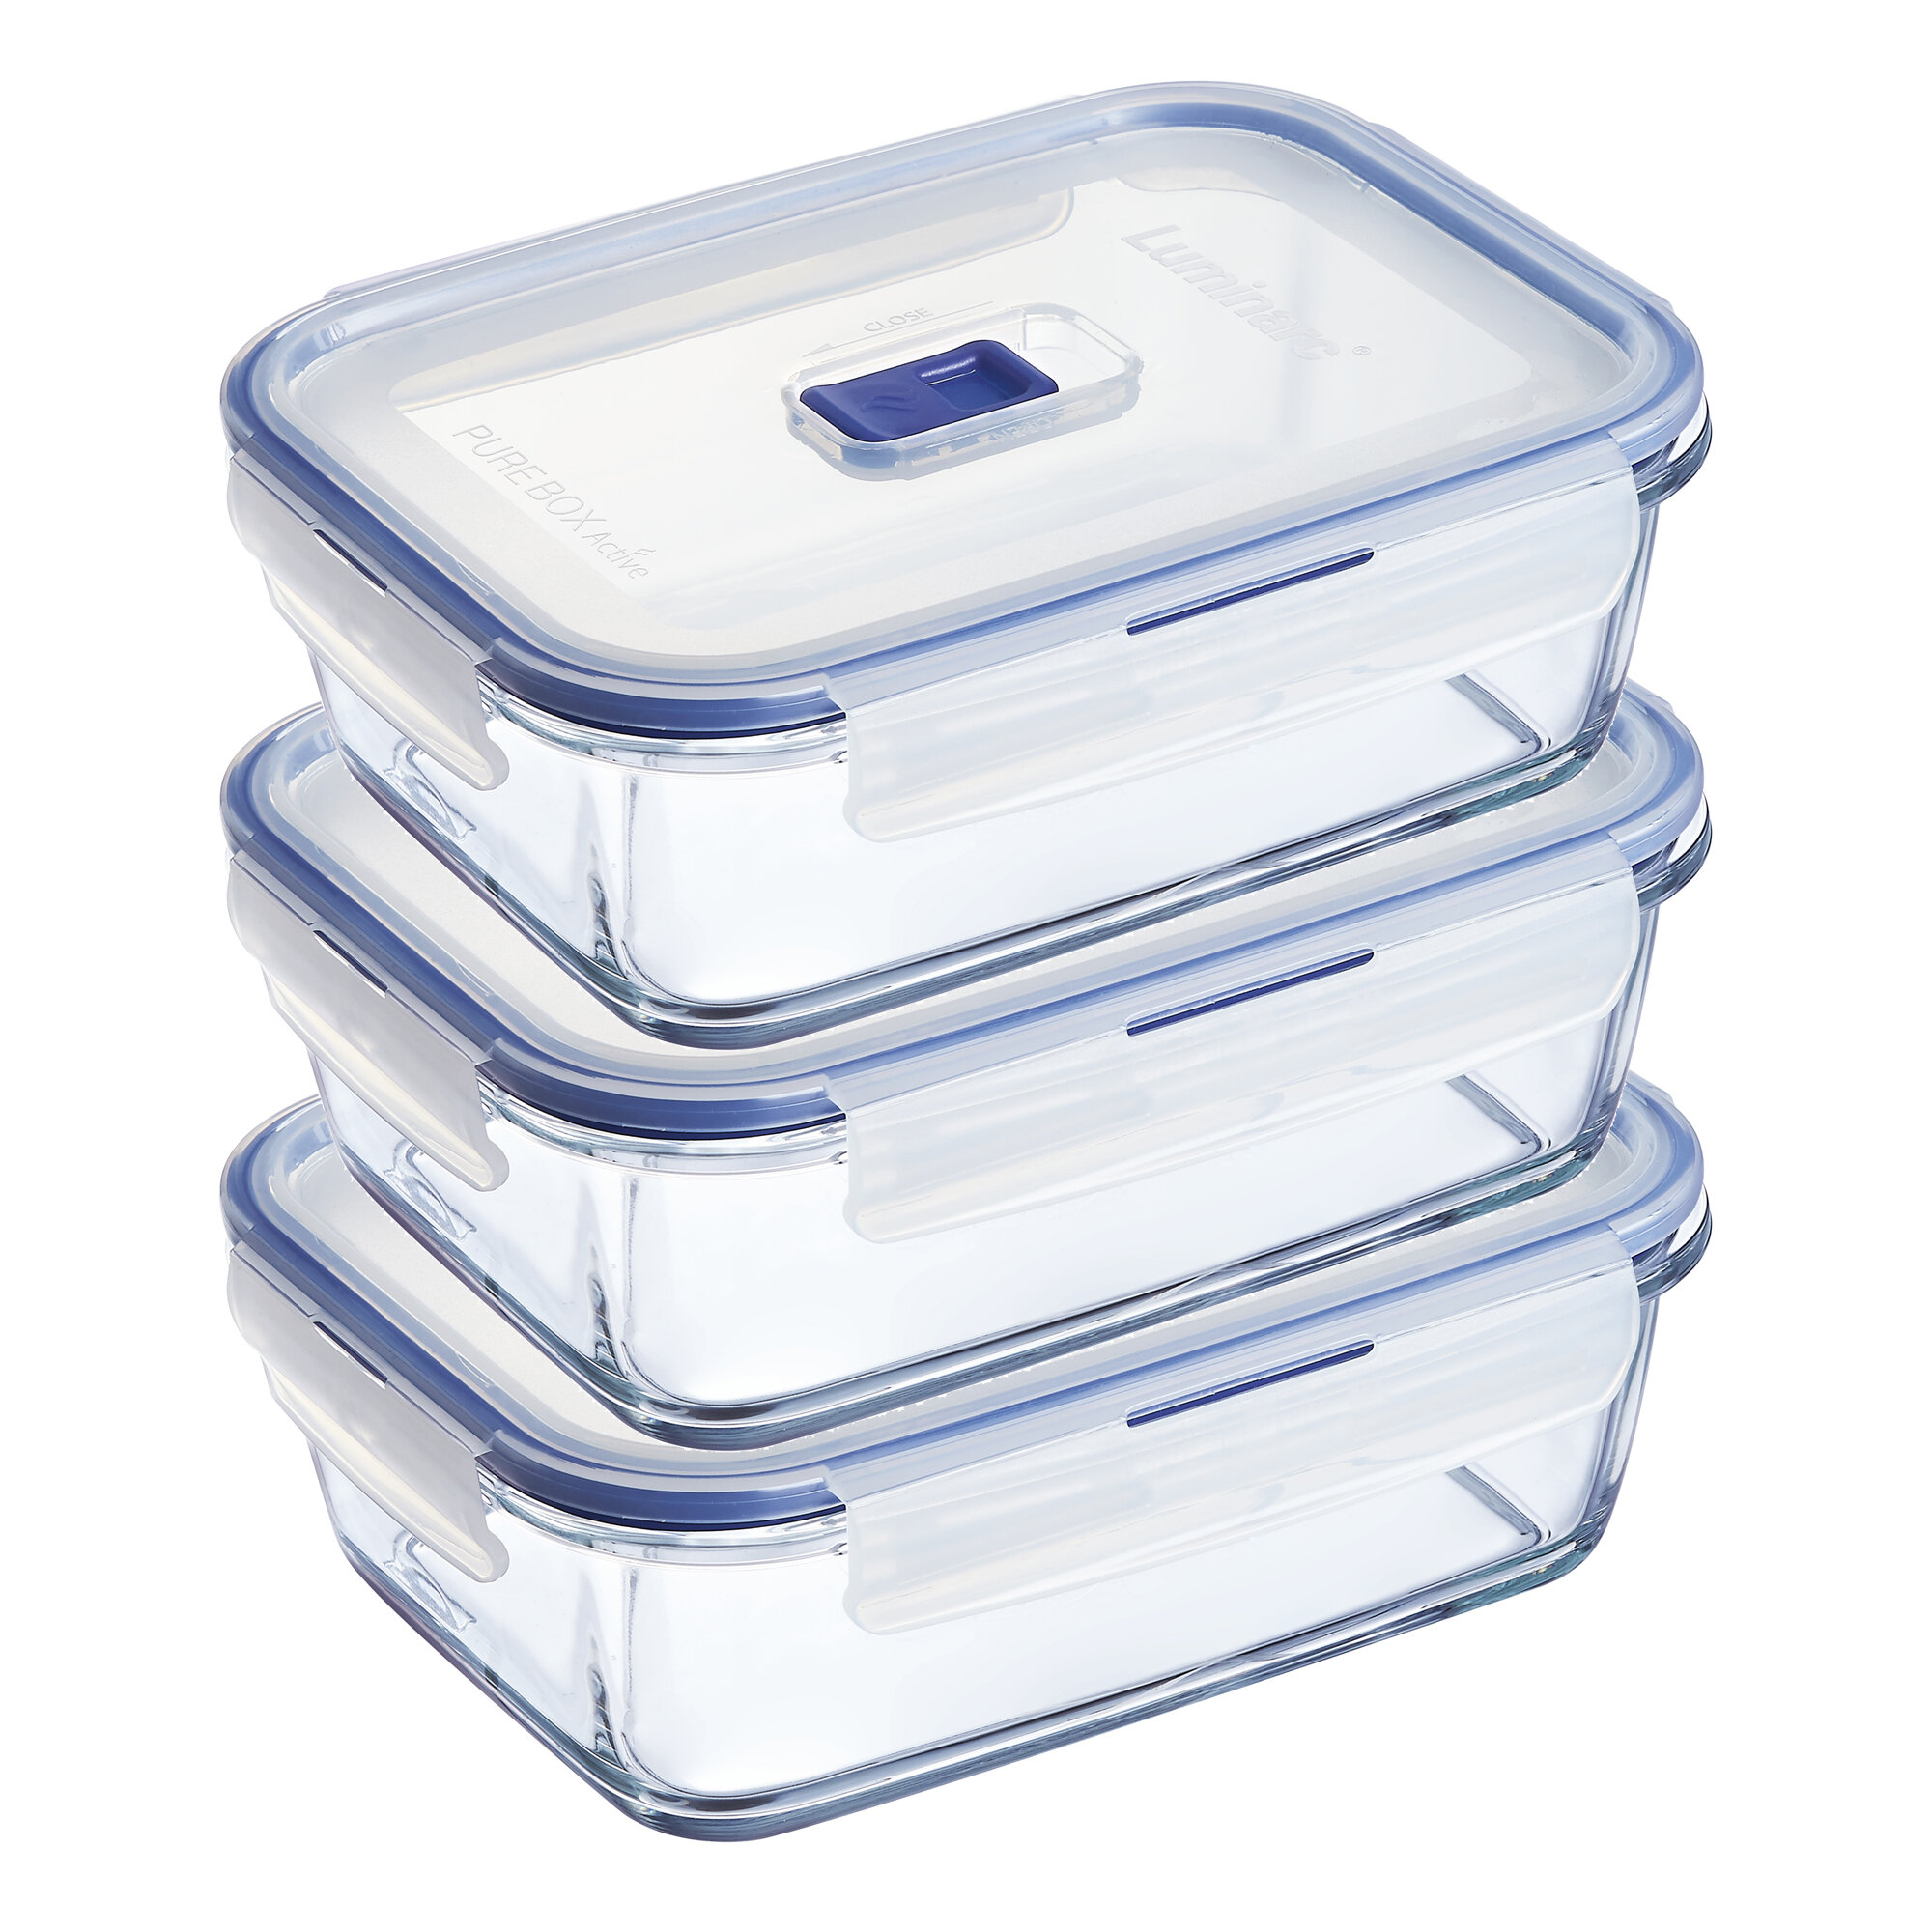 Luminarc Pure Box Active 3 Container Food Storage Set Reviews Wayfair